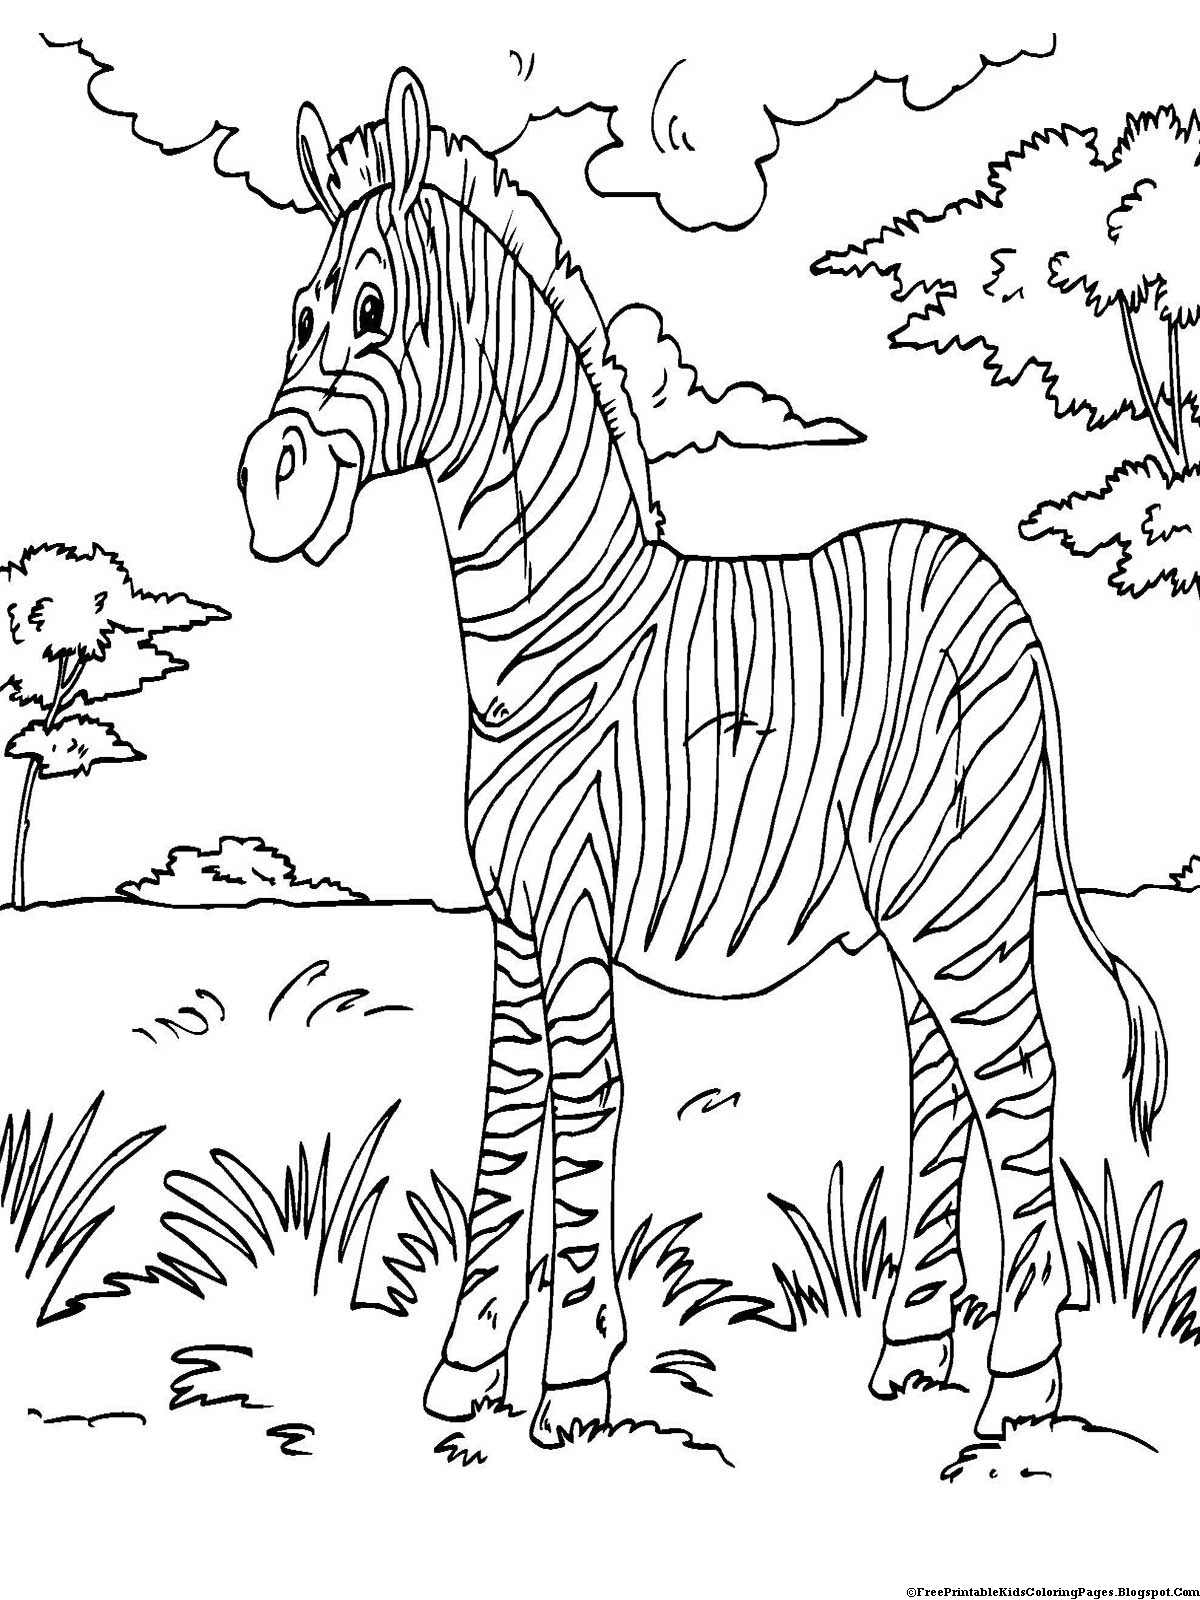 coloring printables zebra coloring pages free printable kids coloring pages coloring printables 1 1